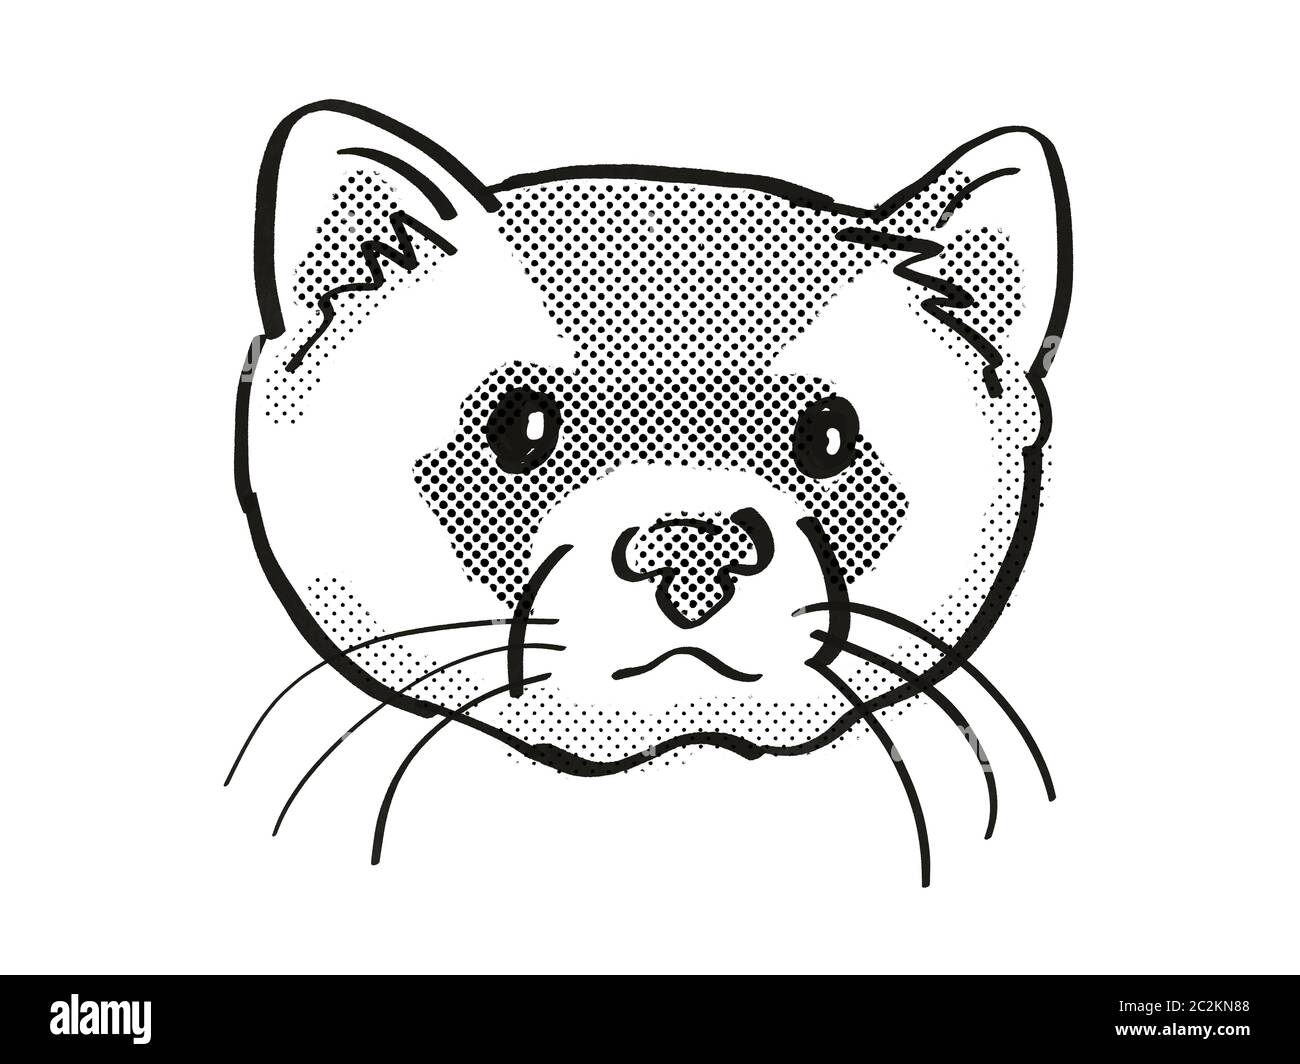 Retro Cartoon Mono Line Style Drawing Of Head Of A Black Footed Ferret American Polecat Or Prairie Dog Hunter And An Endangered Wildlife Species On I Stock Photo Alamy,How Long Do Cats Live In A House